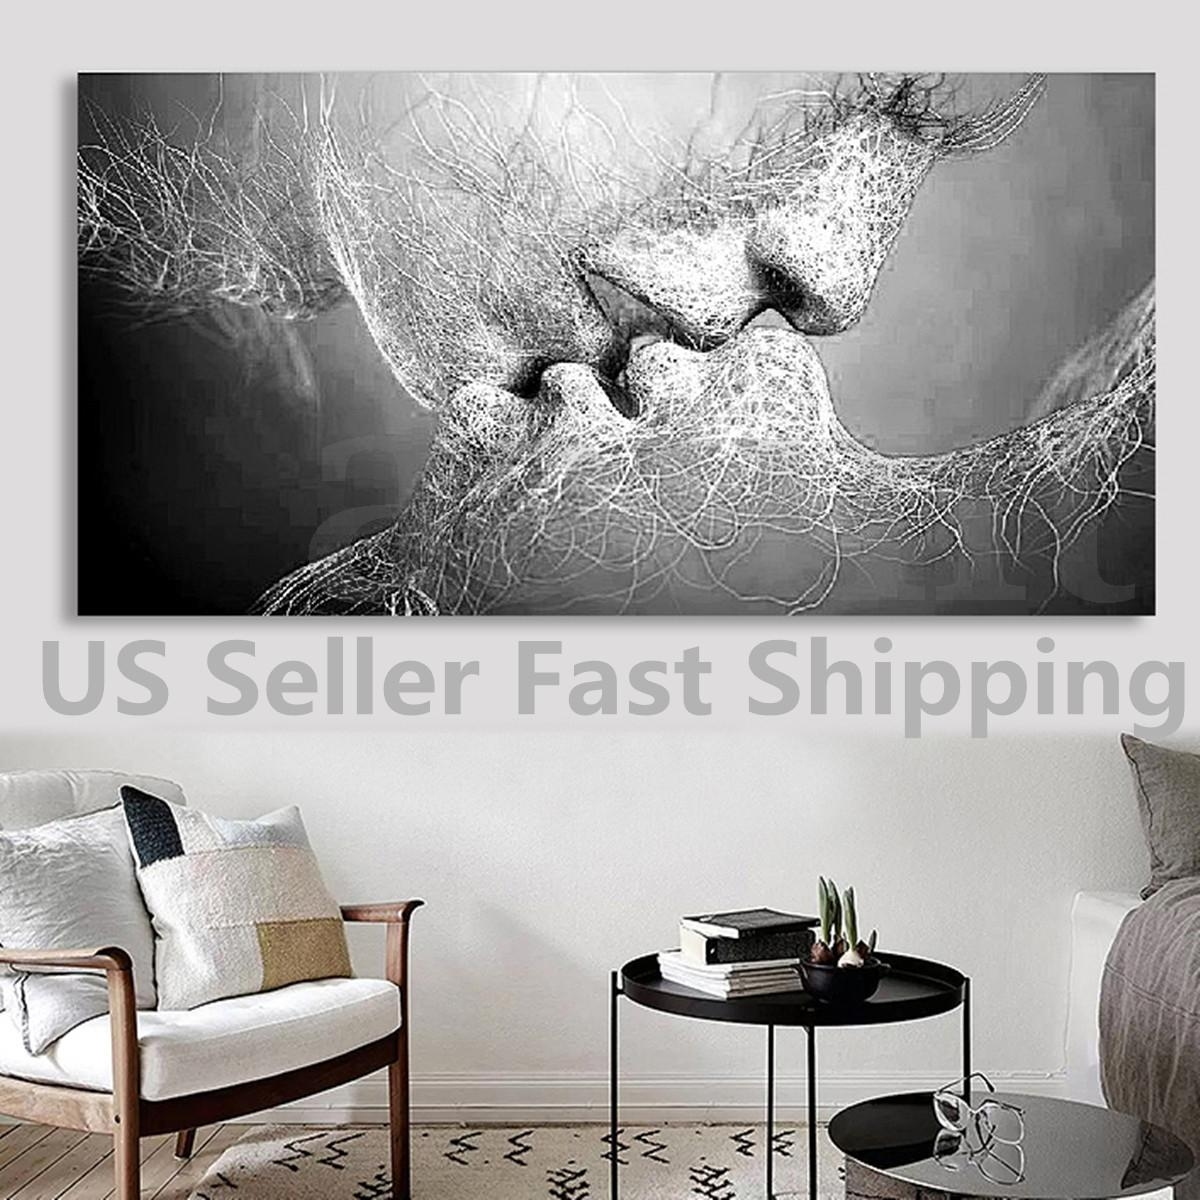 Black & White Love Kiss Abstract Art On Canvas Painting Wall Art Inside Black And White Wall Art (Image 6 of 20)